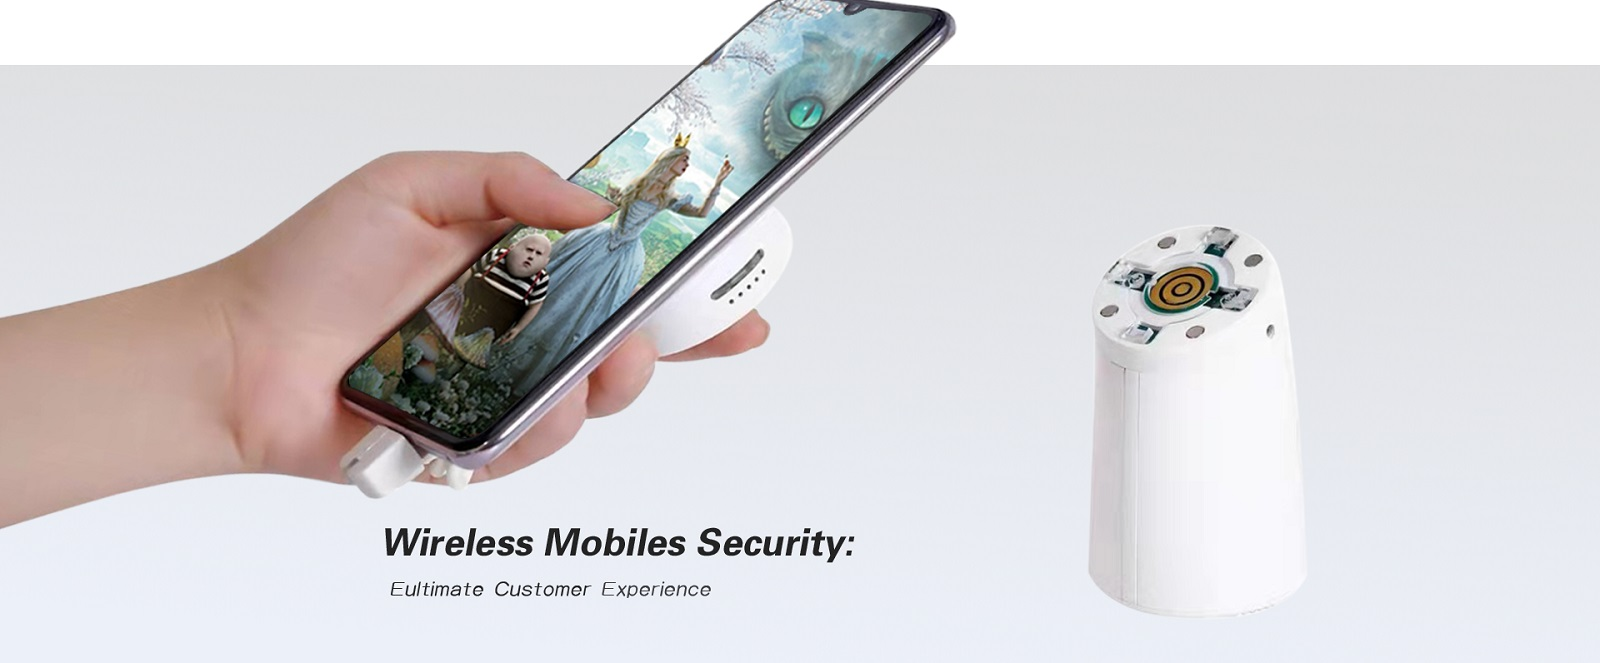 Wireless mobile phone anti theft holder, let customers experience the phones freely in shore, provide ultimate customer experience.Meanwhile,it will alarm when the smartphone are taken out 1.5 meter distance,protecting the mobiles phone from theft